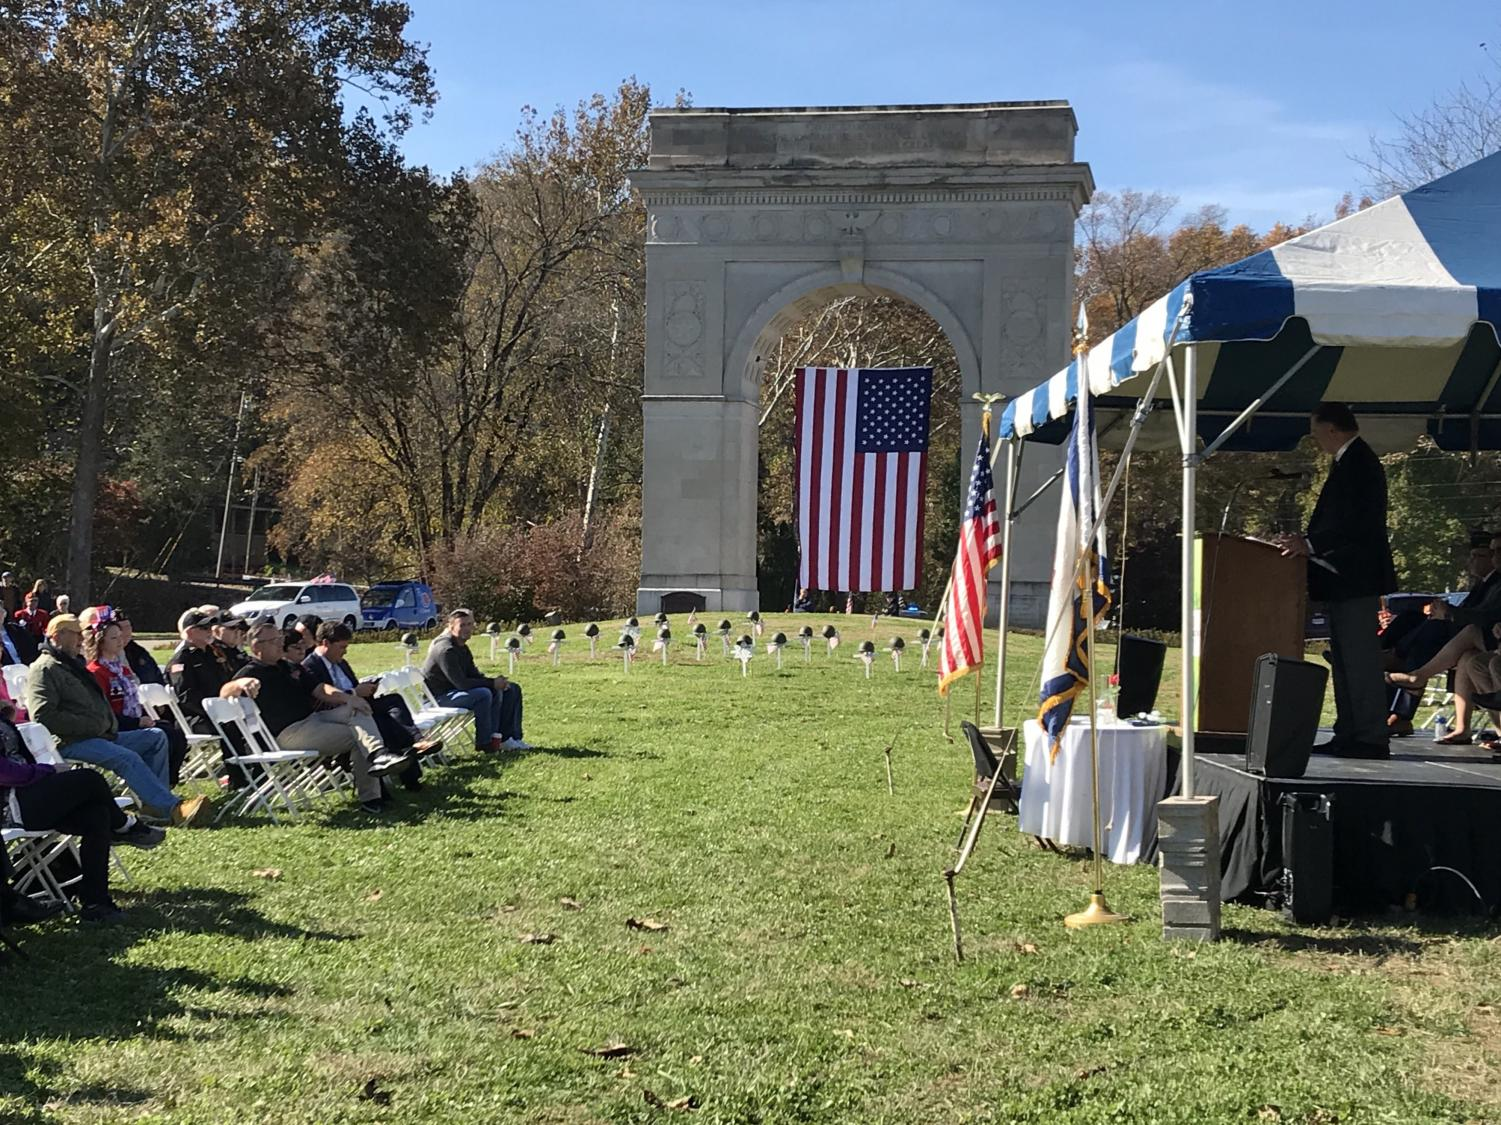 Legislative members, families, children and canines alike honored Veterans at a Veterans Day program and ceremony.